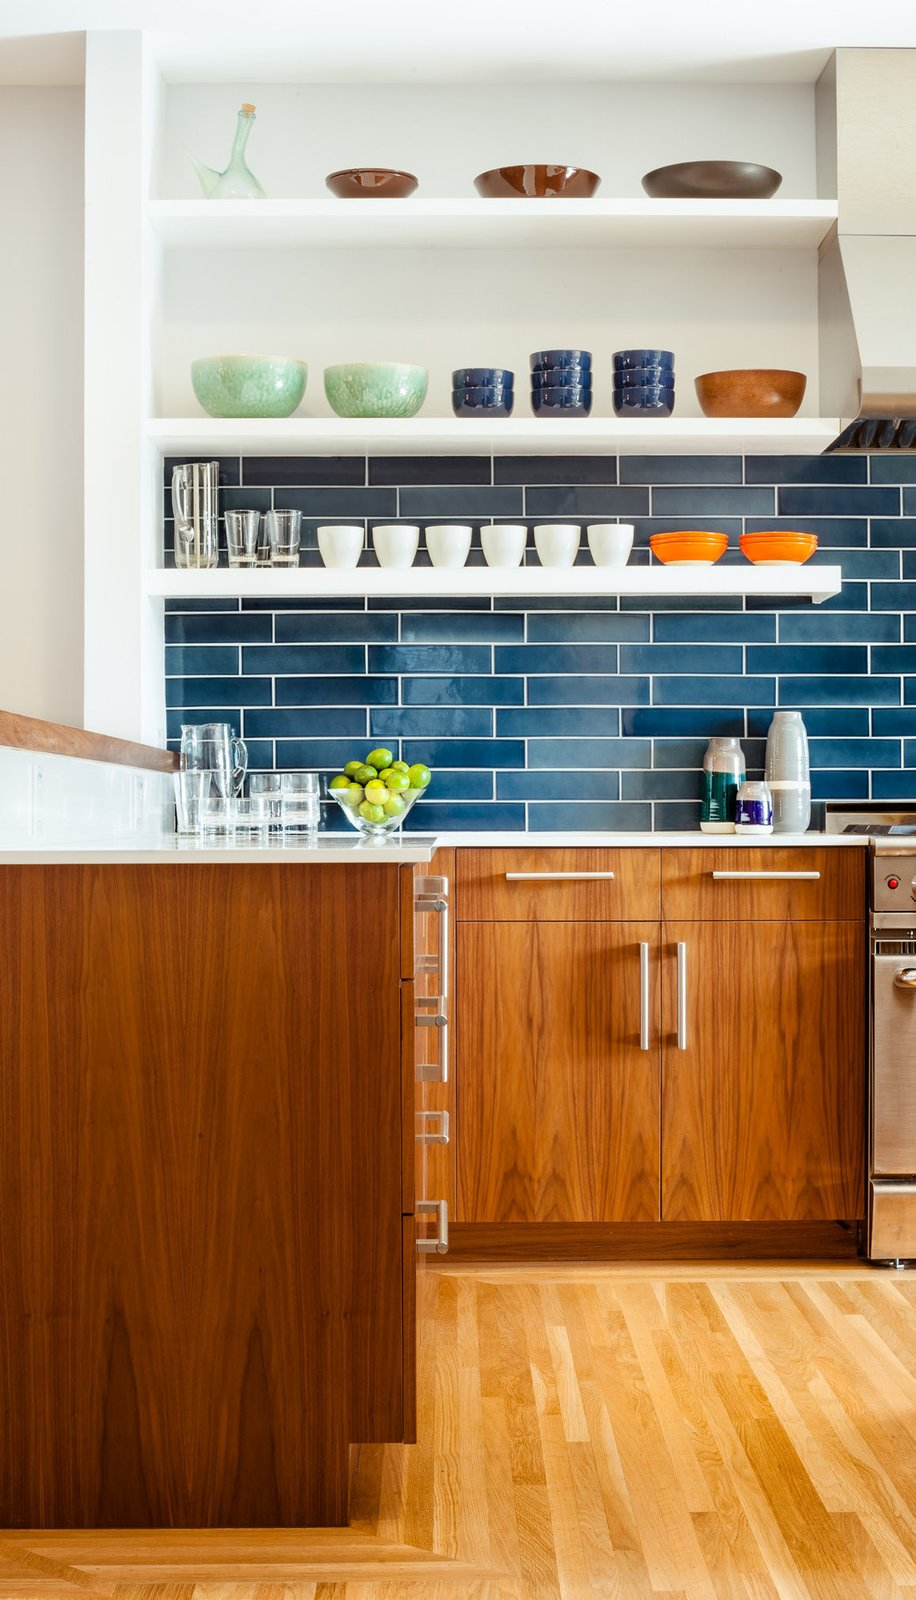 The residents have a particularly strong sense of color and love to cook with their son, so no-fuss finishes likes these blue tiles from Heath Ceramics were an ideal choice. The tiles combine with colorful tableware and custom walnut cabinetry to make a vibrant inteiror.  Photo 16 of 21 in The Pantone Choice: Top 10 Colors for Spring 2017 from A Fresh Kitchen Update for the Family That Cooks Together